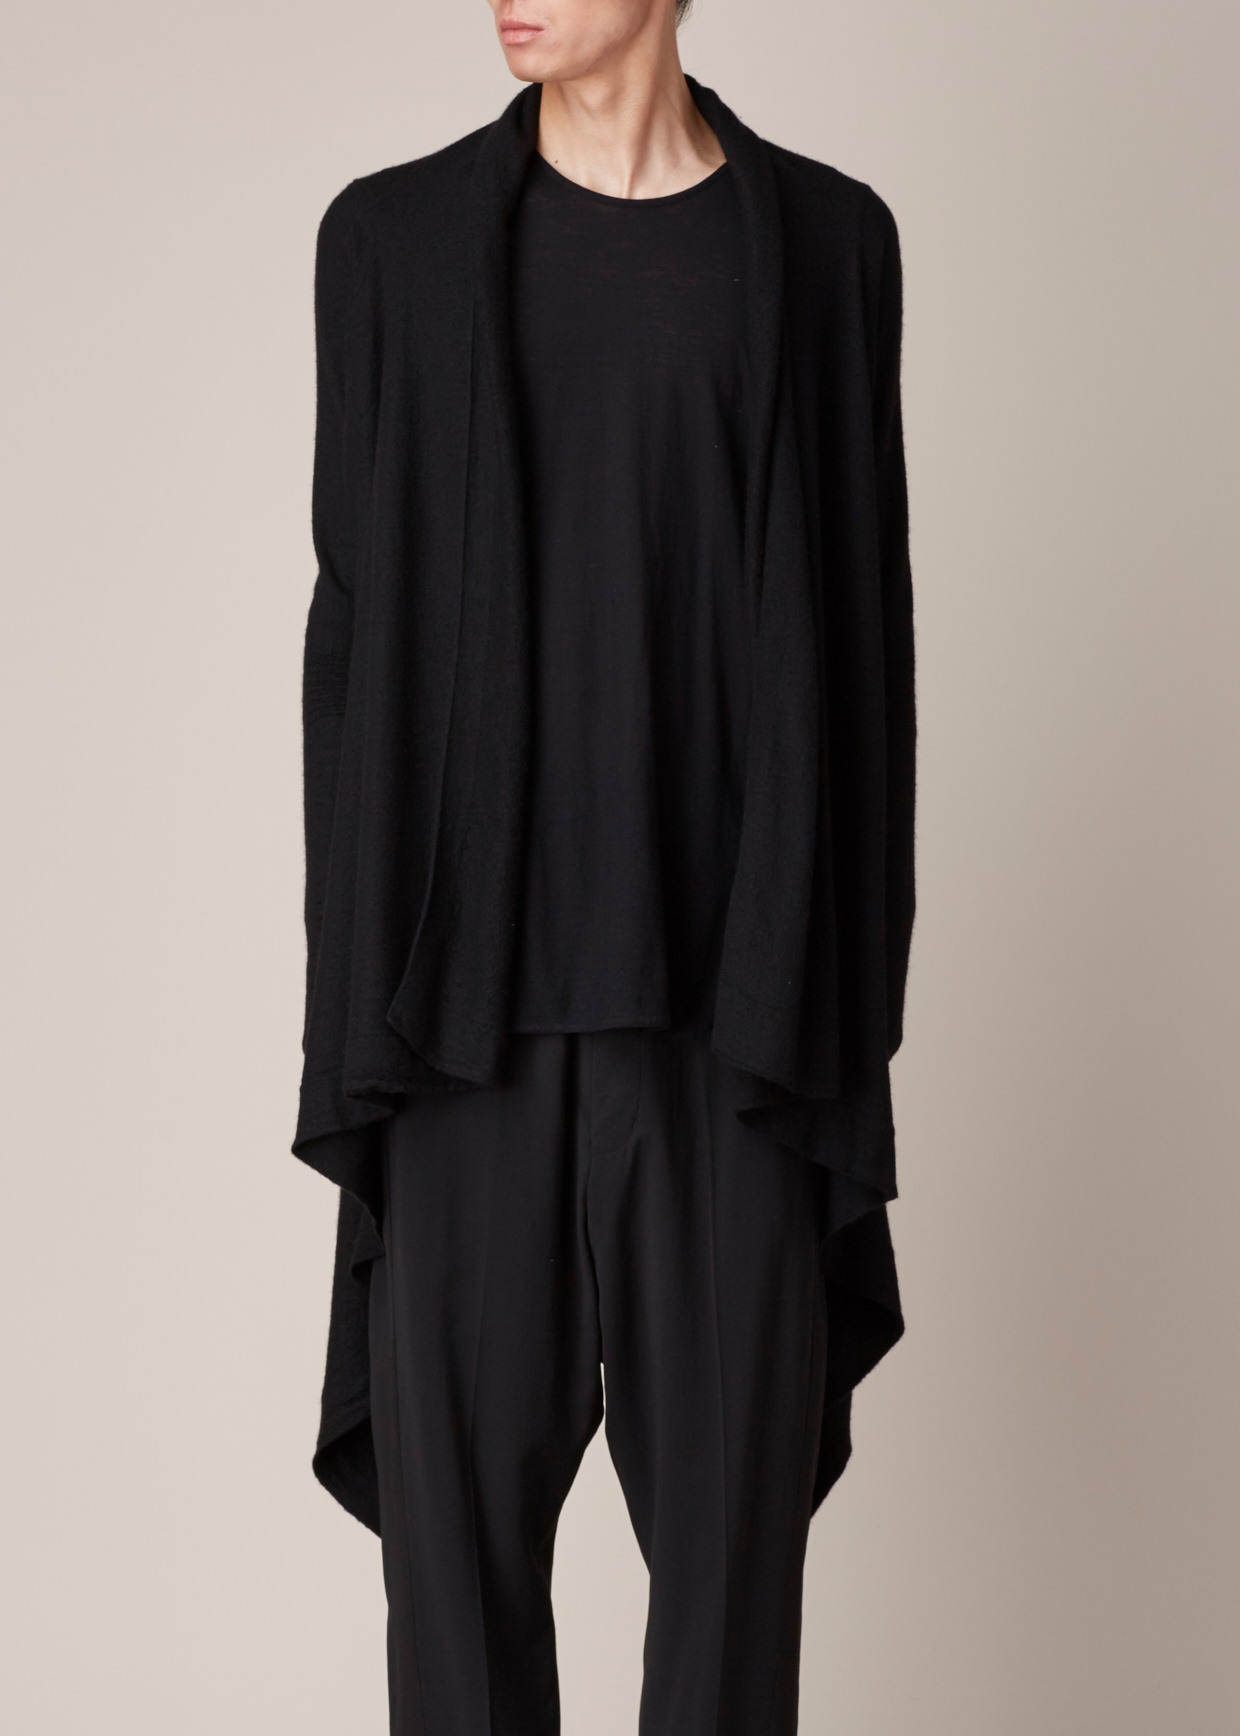 Rick owens Black Cashmere Wrap Cardigan in Black for Men | Lyst